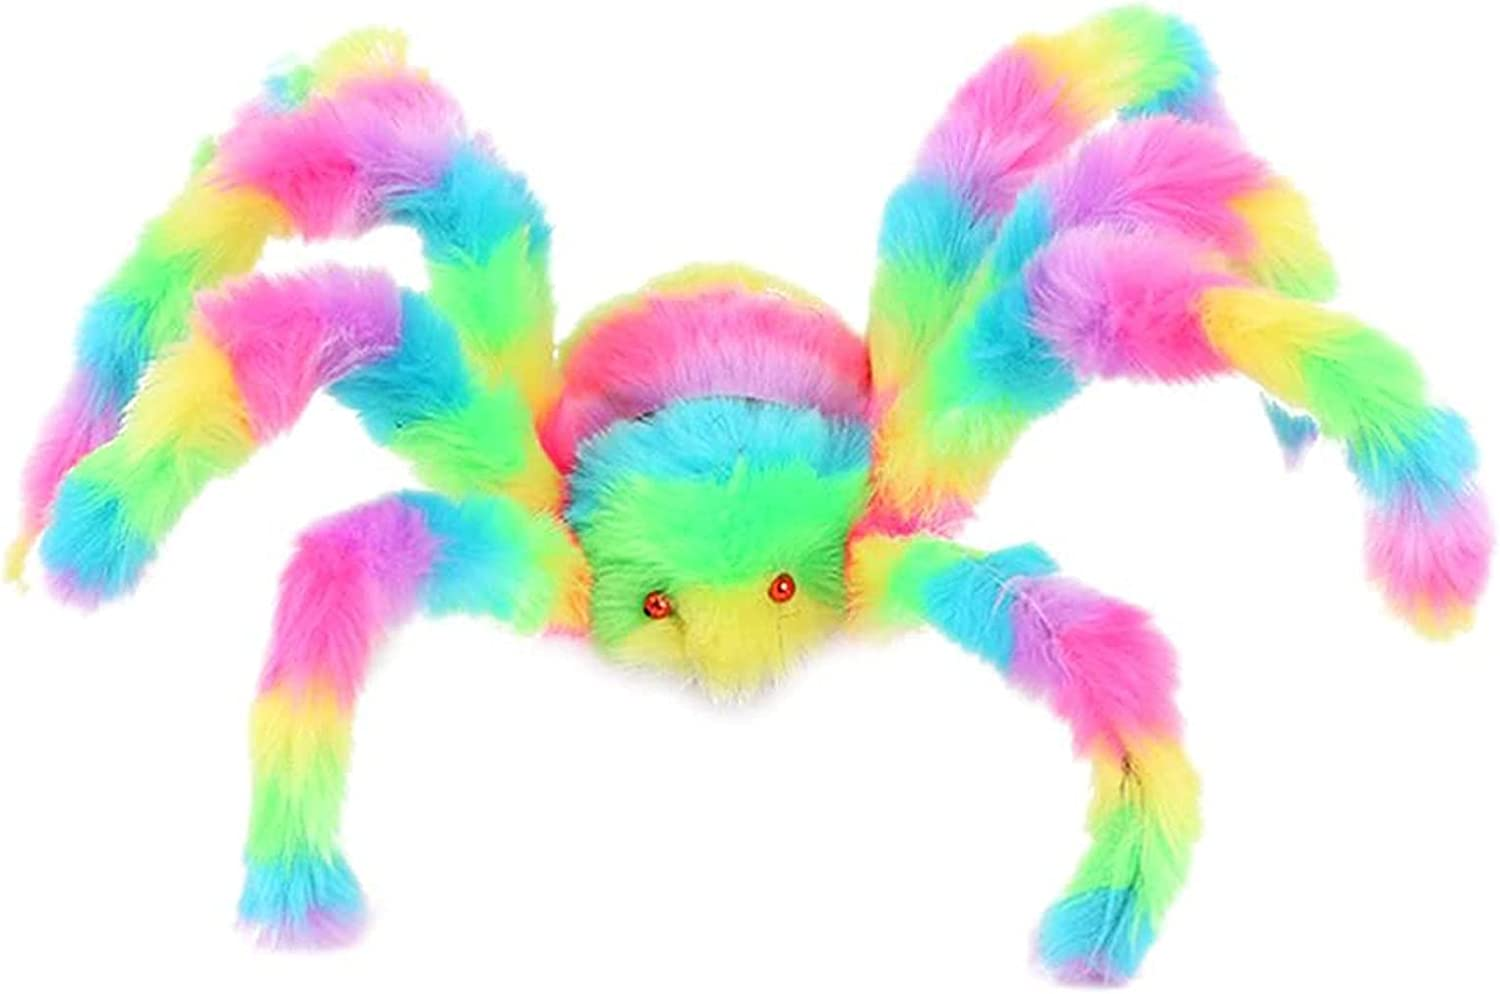 Spider Cheap super special price Sculpture Decoration Halloween and Colorful 67% OFF of fixed price Large